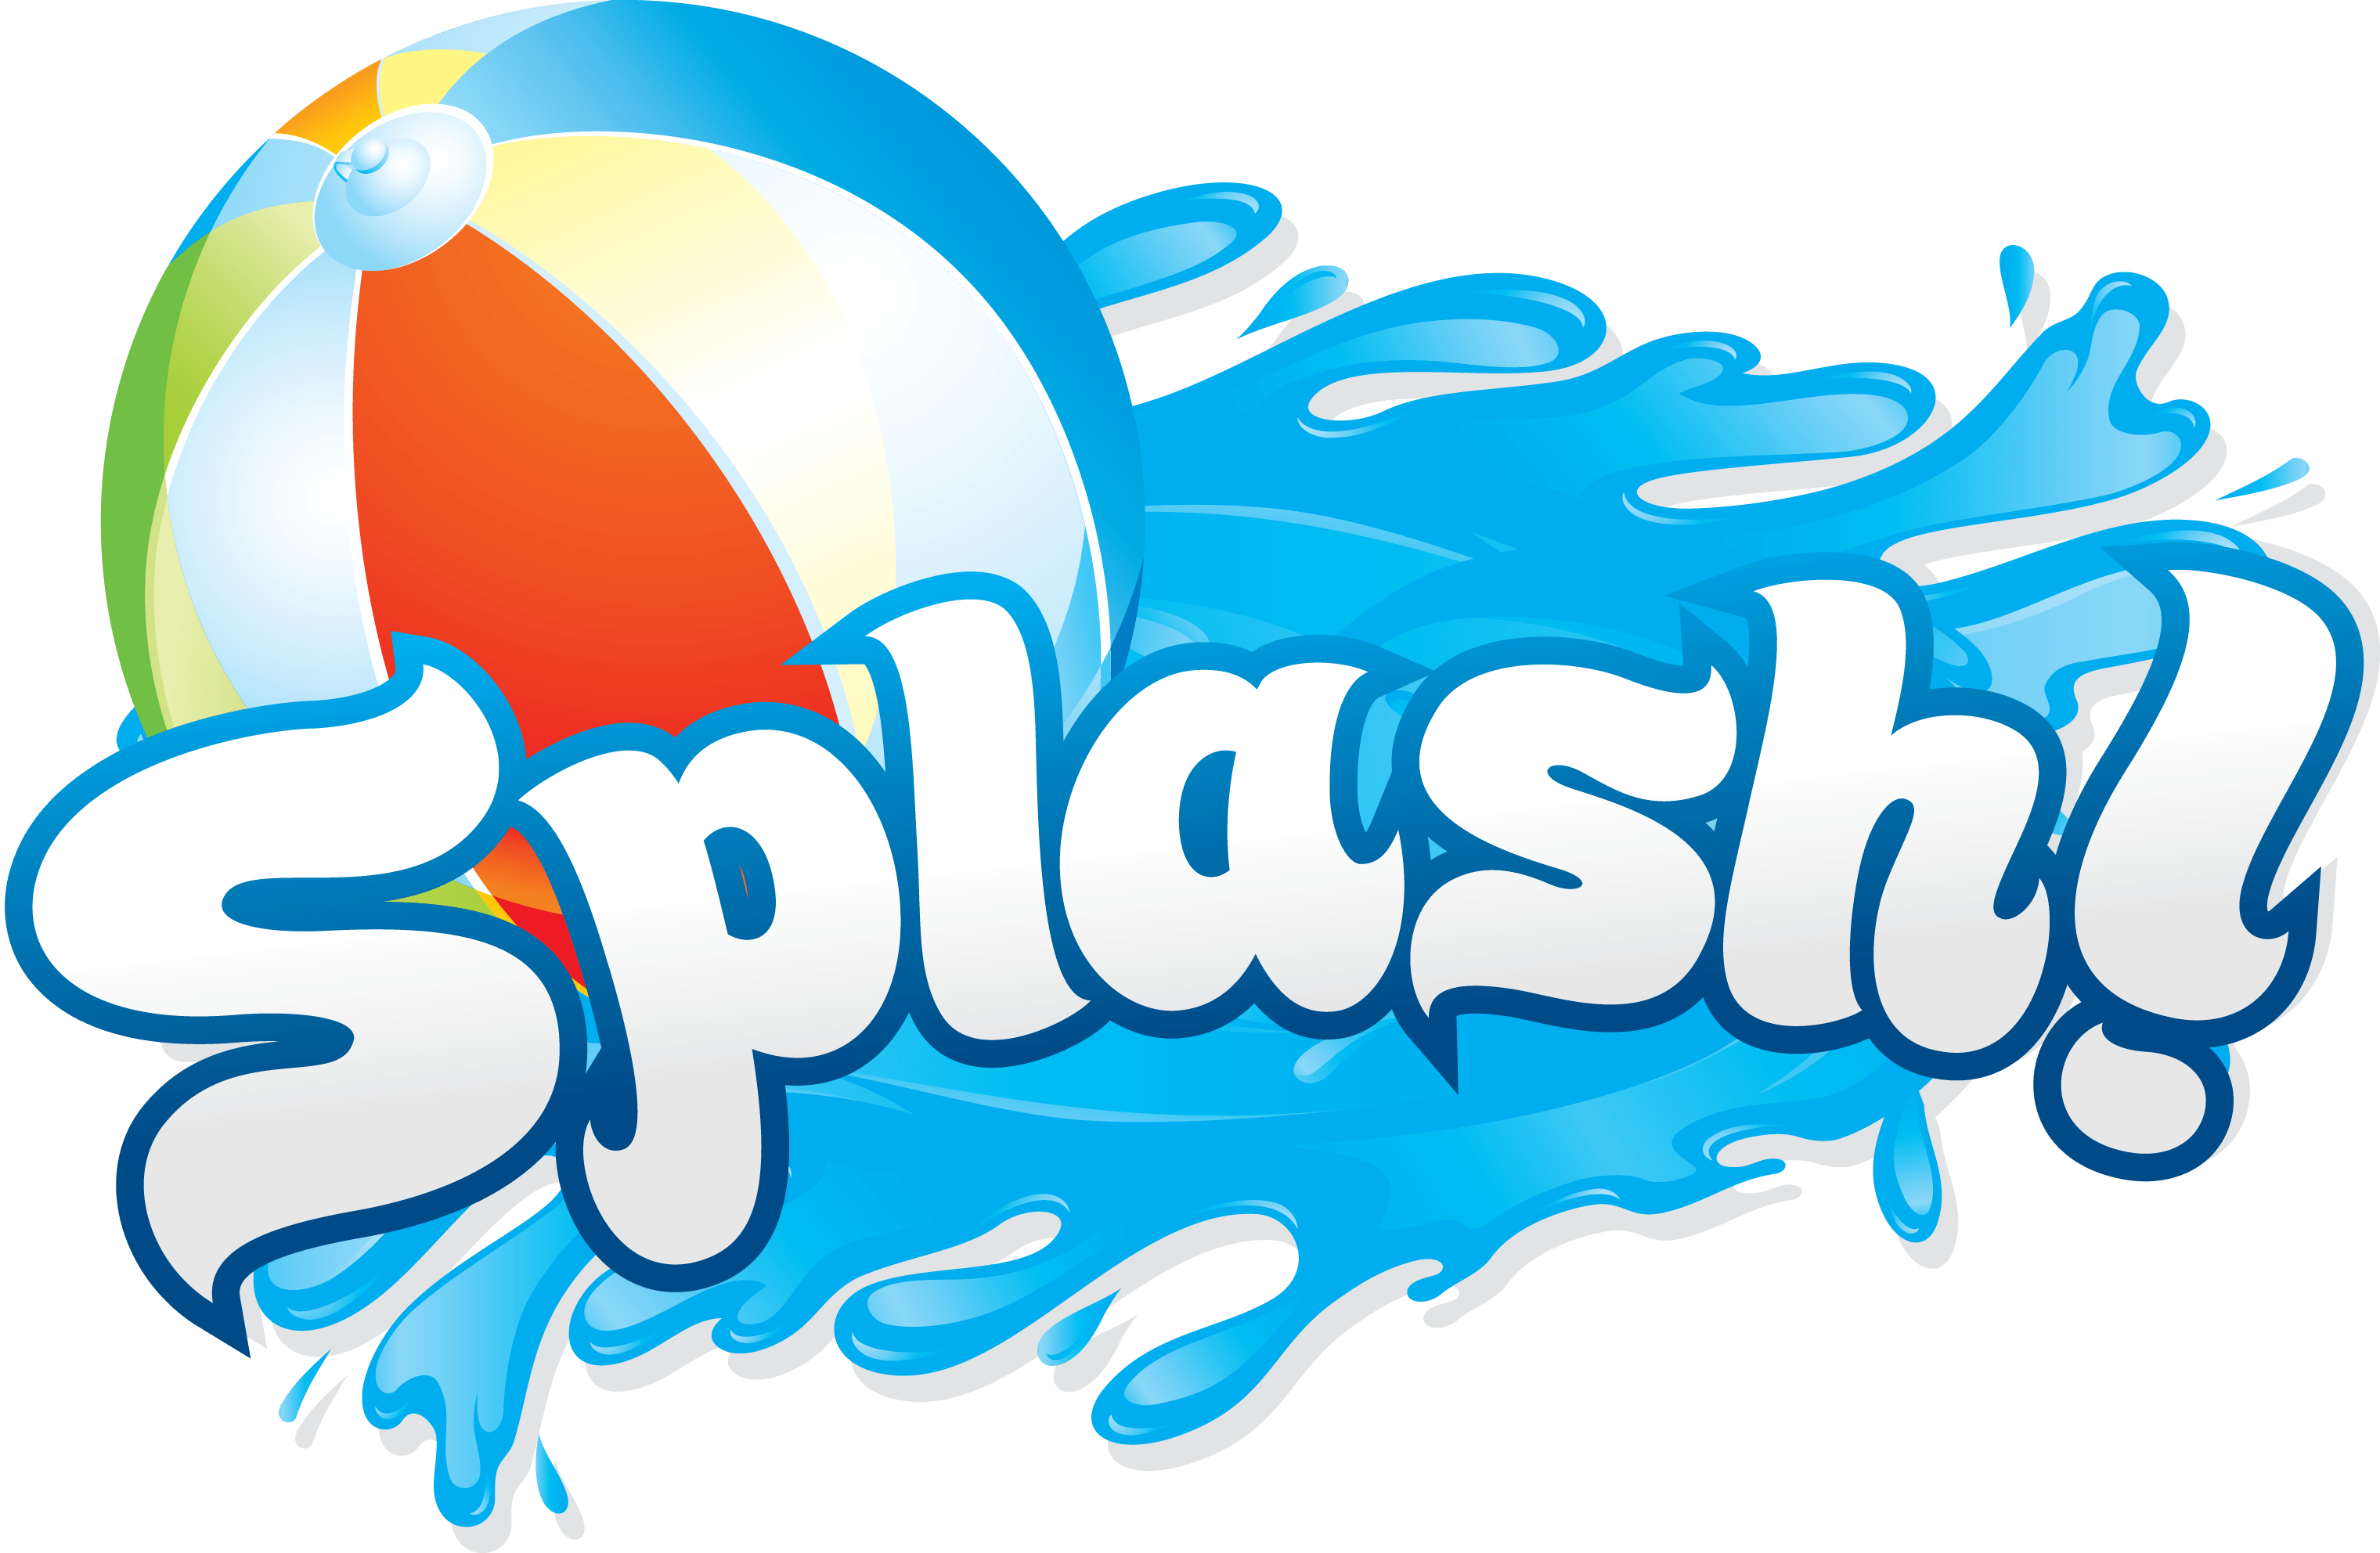 Fish splash clipart graphic black and white stock Borde de Clip Clip de Pool Splash | Pool party | Pinterest | Clip ... graphic black and white stock